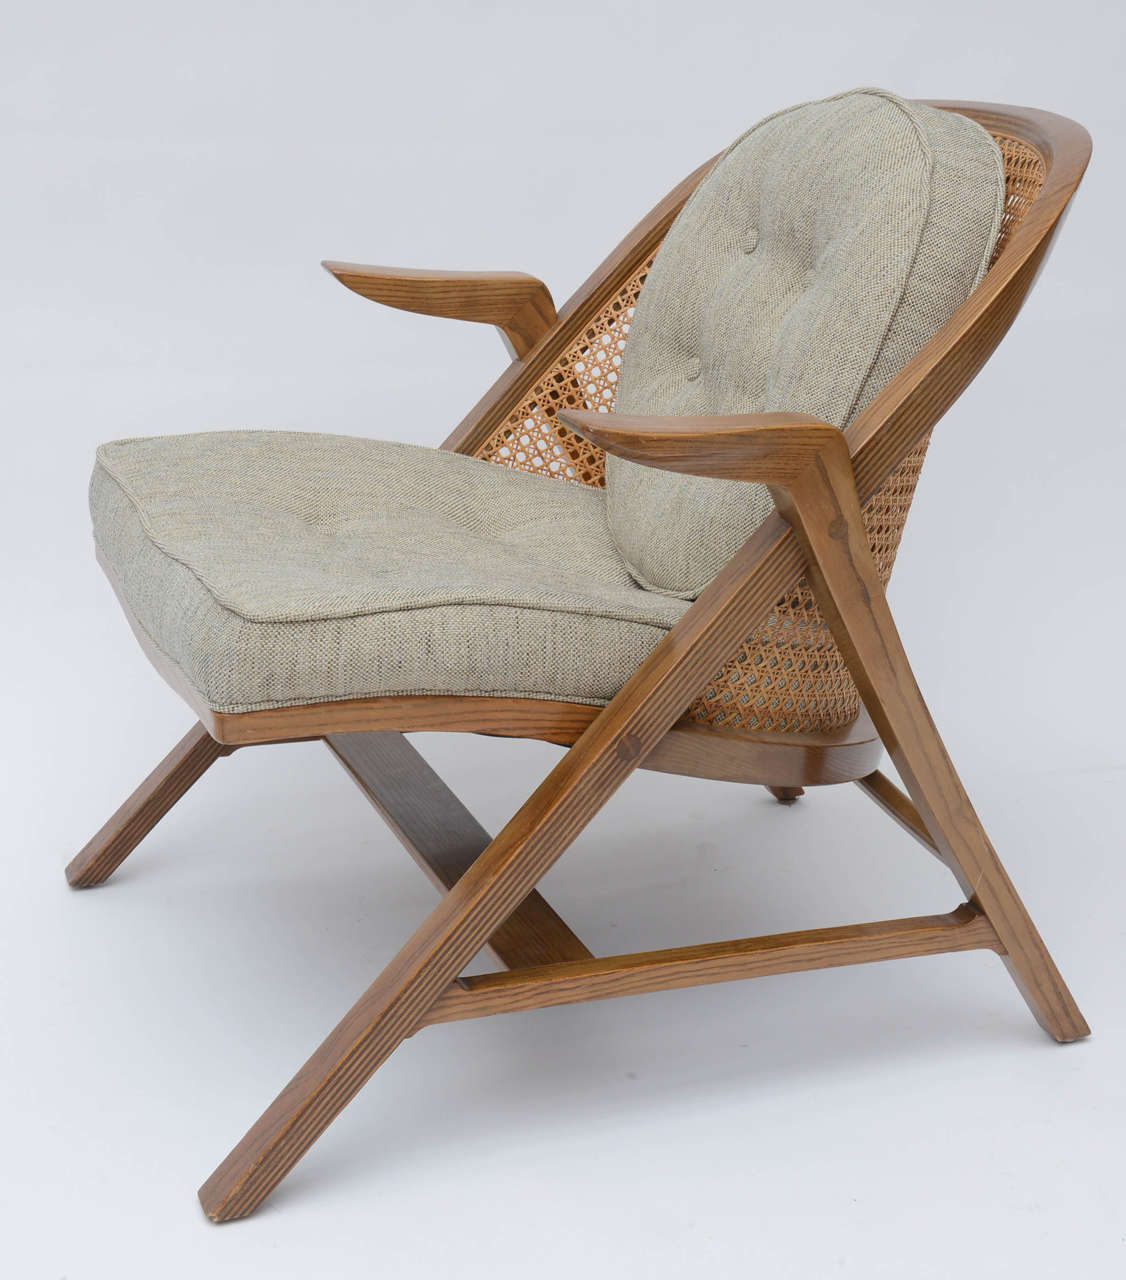 Edward wormley a frame lounge chairs for sale at 1stdibs - Edward wormley chairs ...